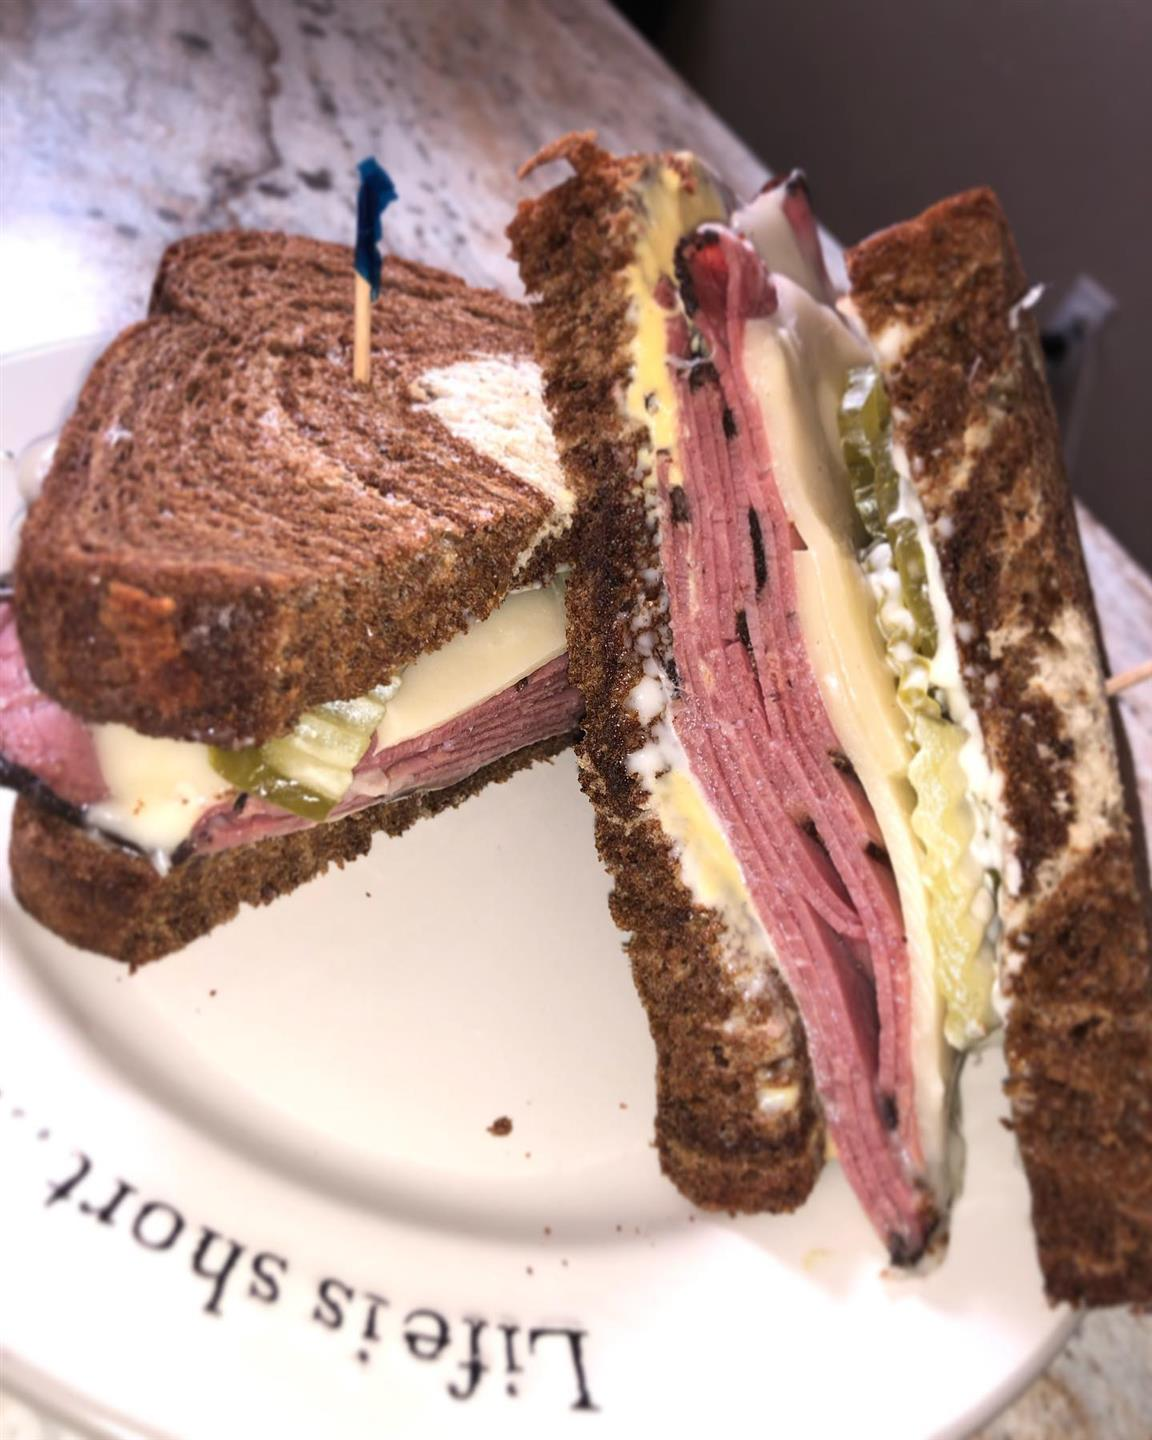 New York Style Pastrami Sandwich: Marble Rye, Pastrami, Swiss, Dill Pickles, Mayo & Dijon